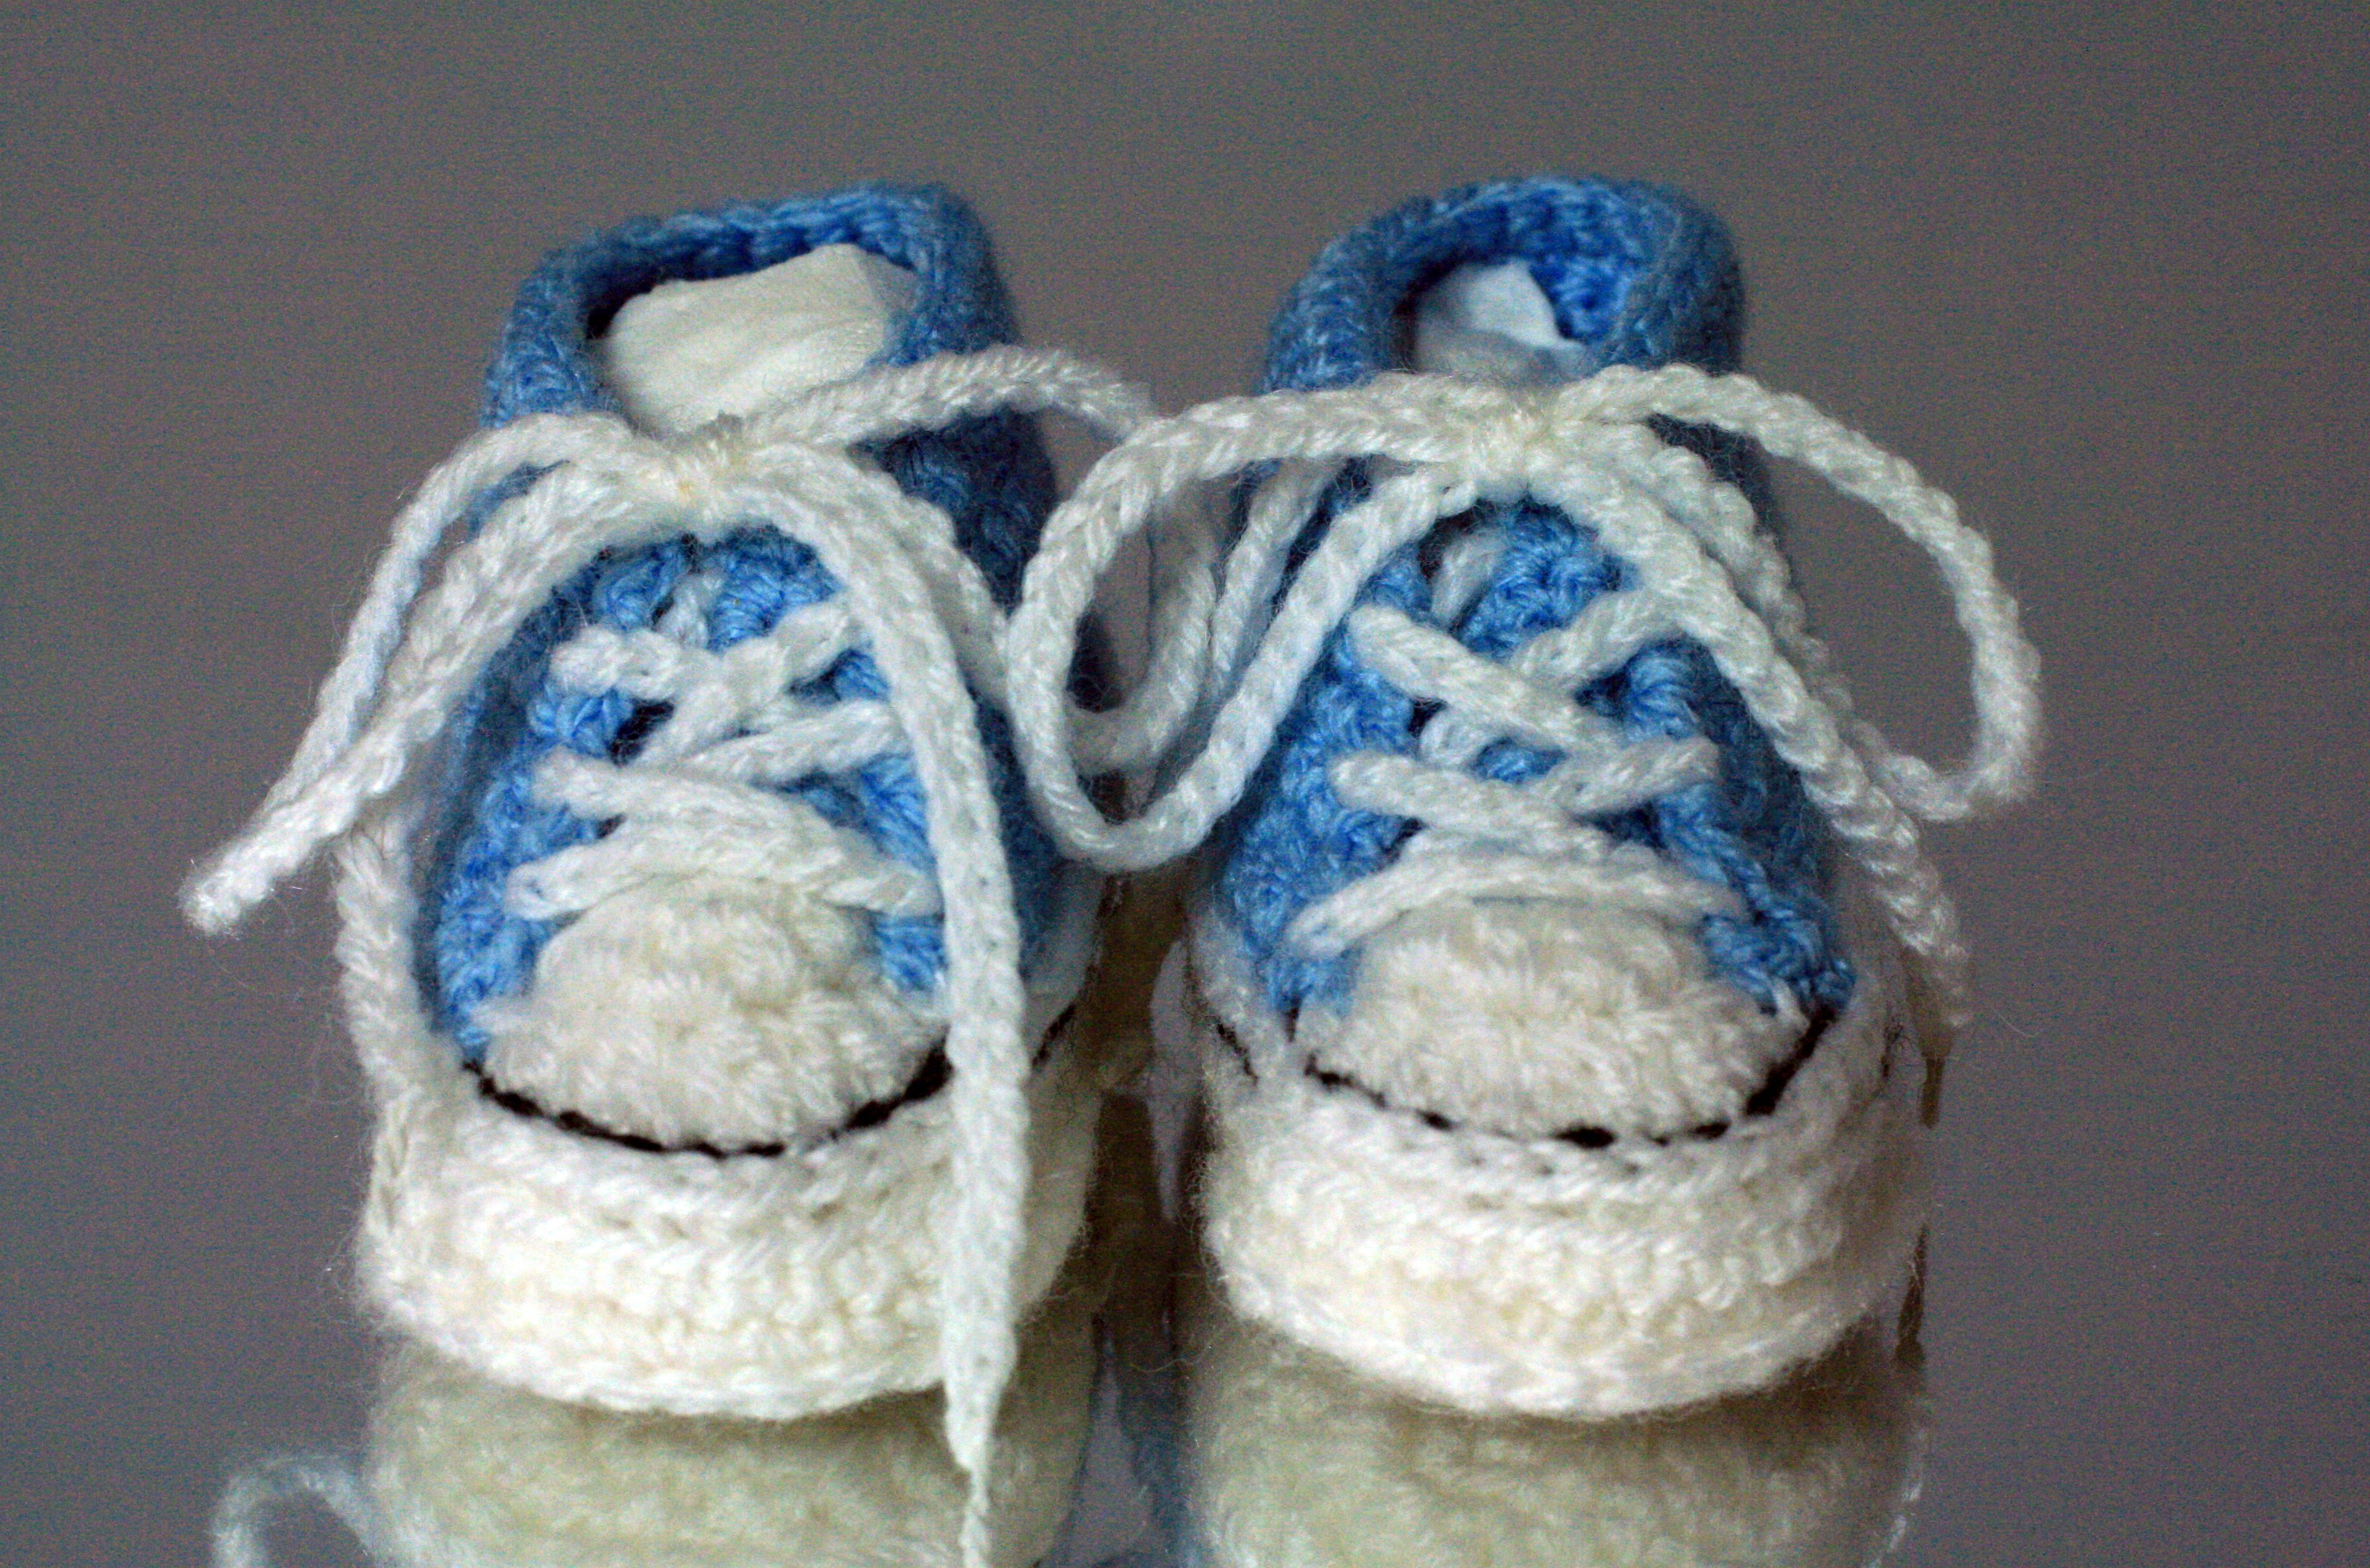 Converse Style Crochet Baby Bootees | Crochet converse, Crochet baby ...